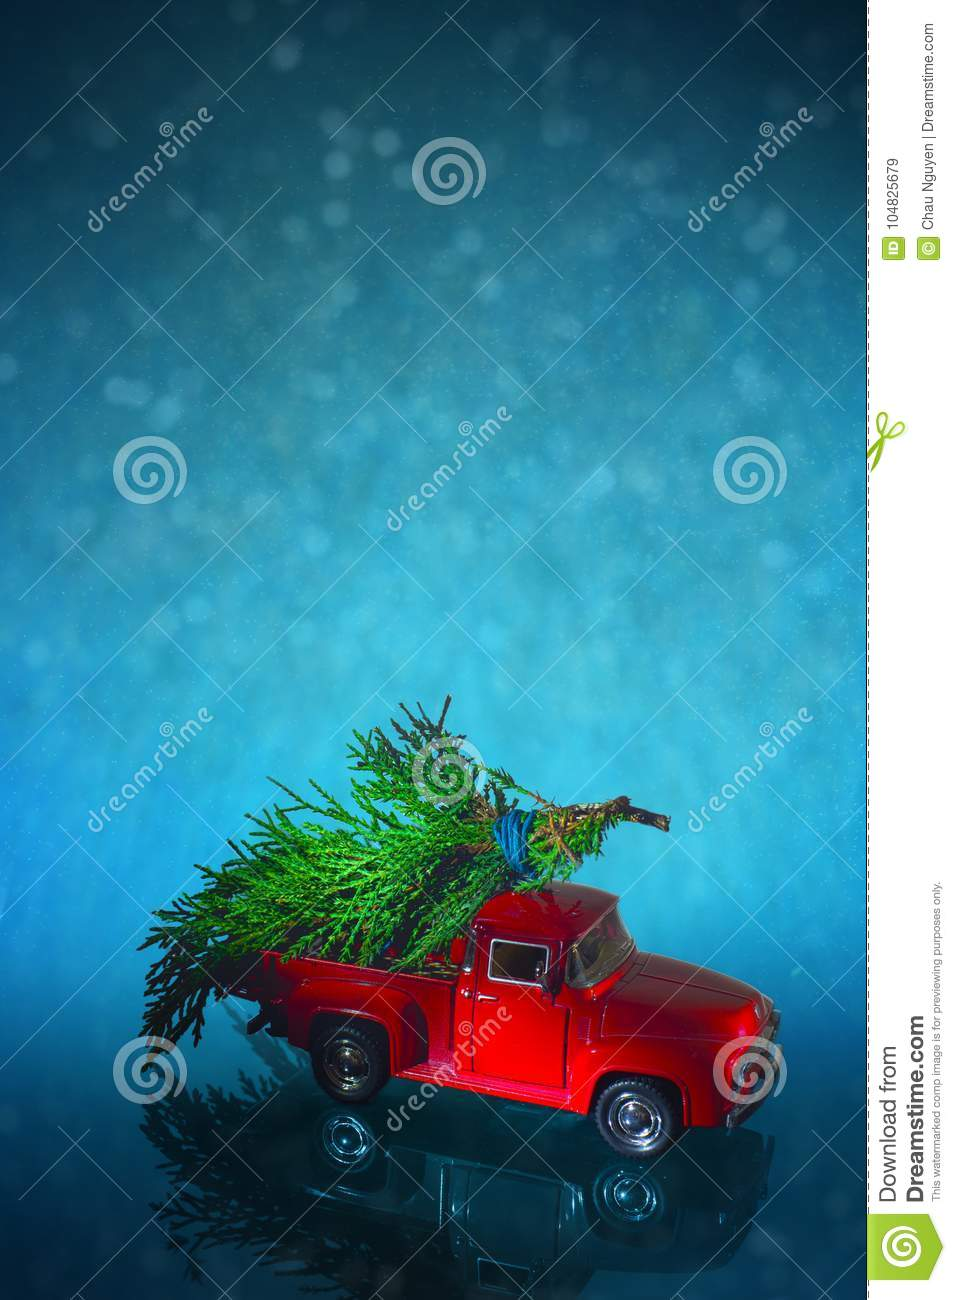 Vintage Miniature Truck Delivers Christmas Tree On Snow Background